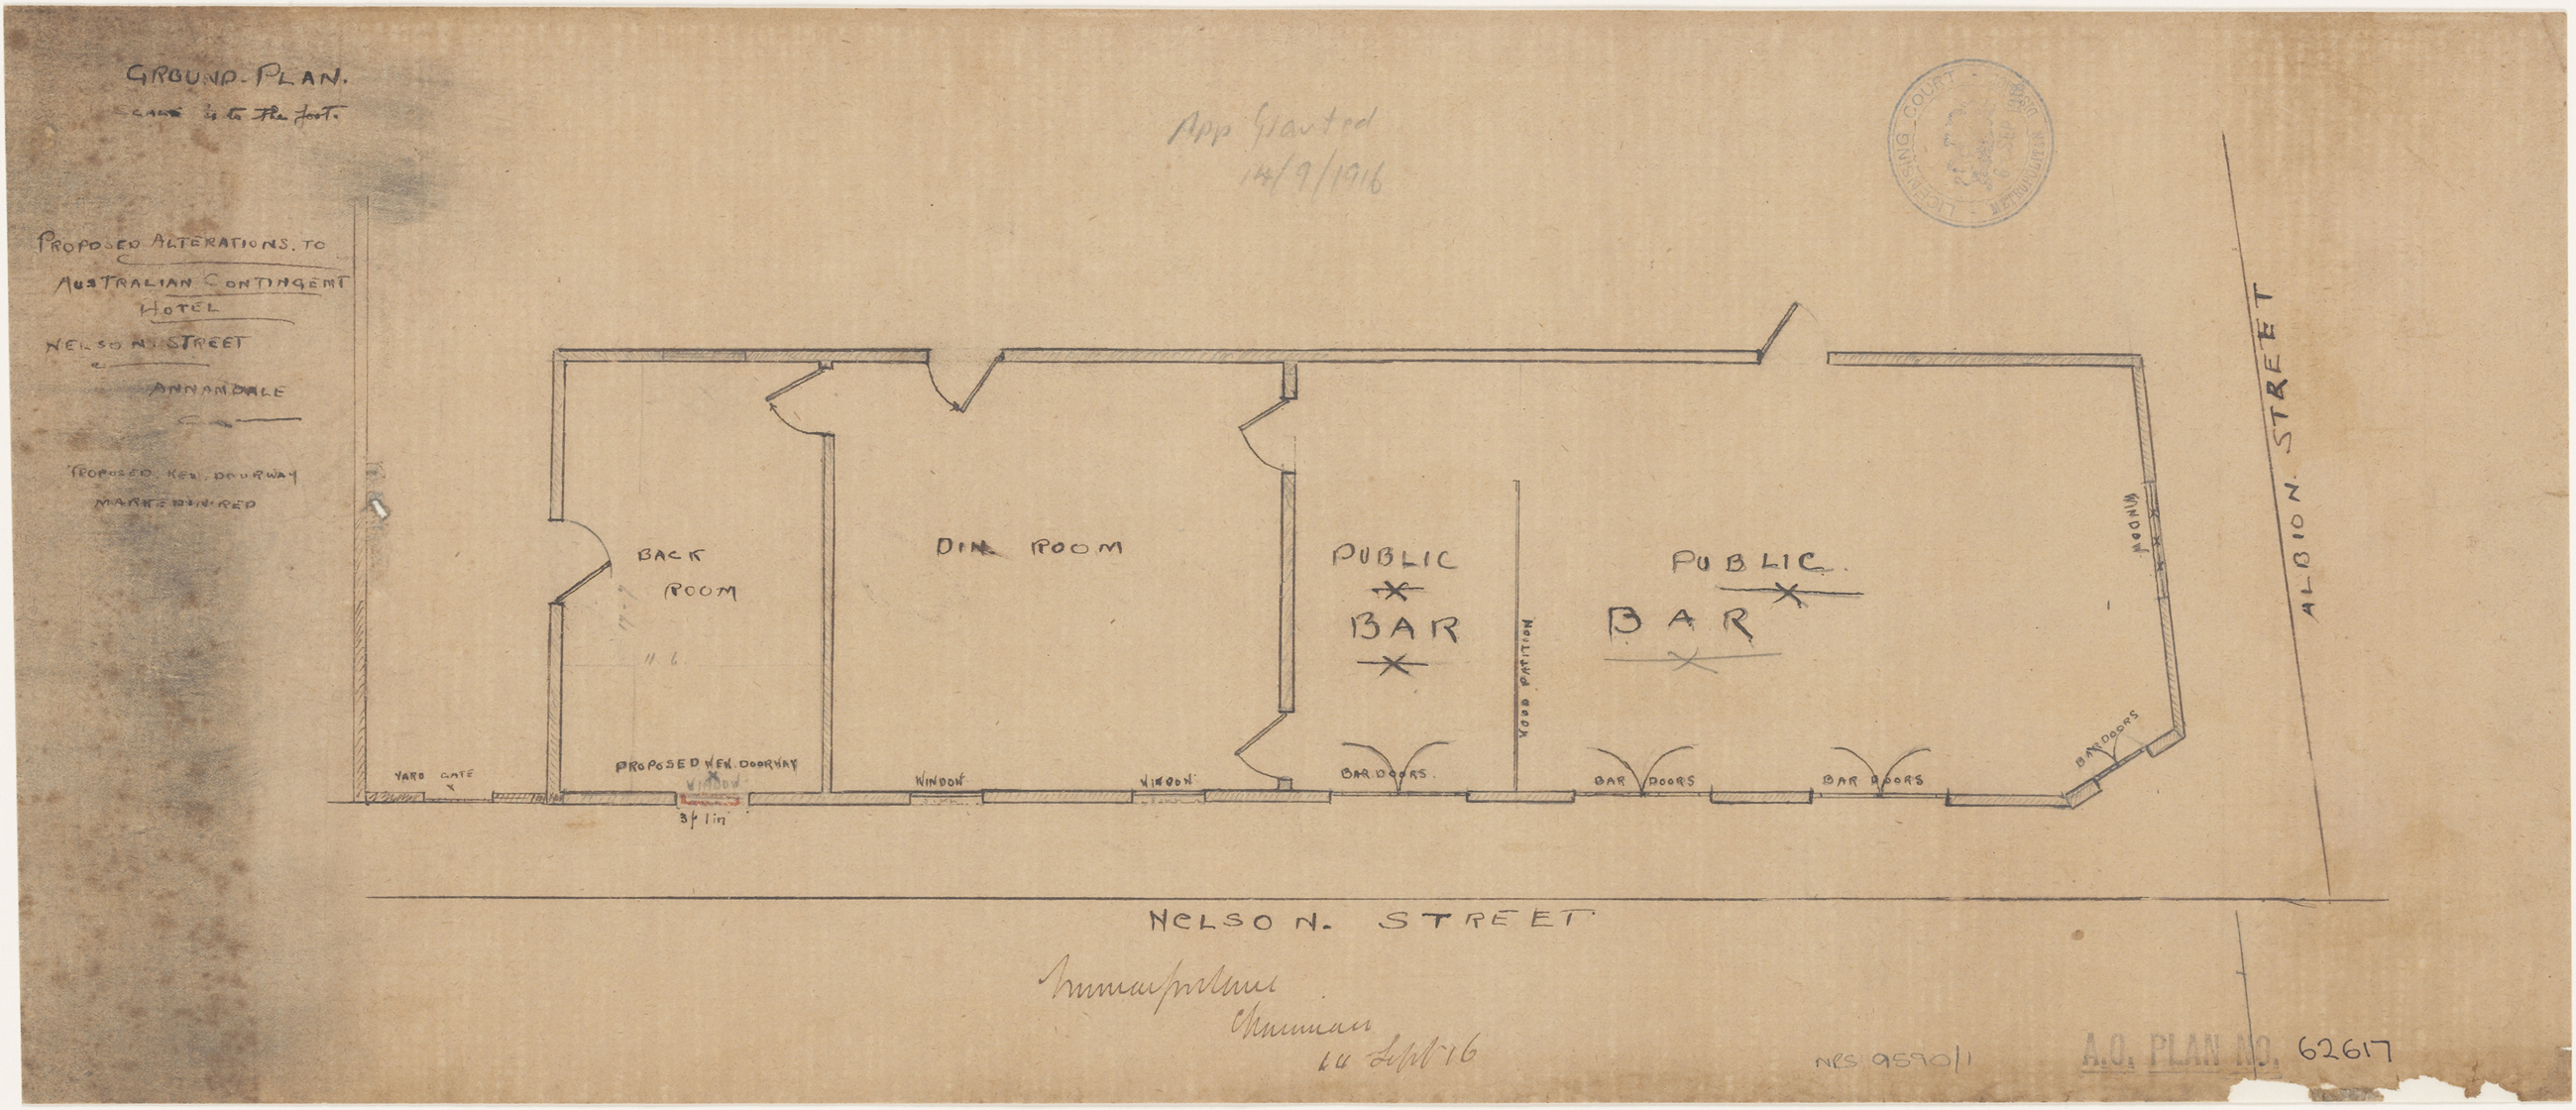 Australian Contingent Hotel, Nelson Street, Annandale, Proposed alterations, ground floor plan.  Lodged 6 September 1916, Application granted 14 September 1916